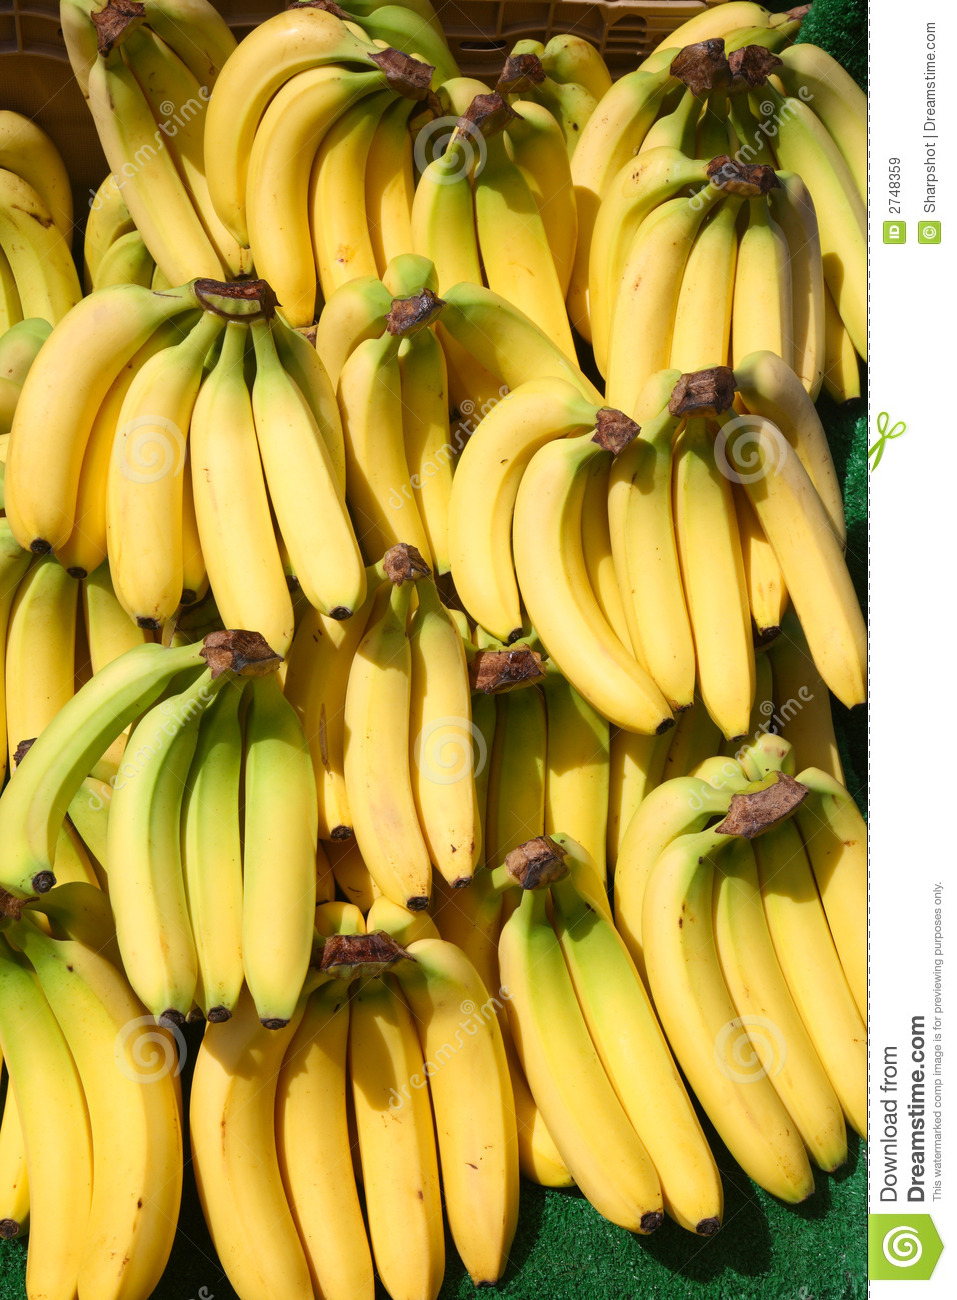 Lots Of Bunches Of Bananas Royalty Free Stock Images